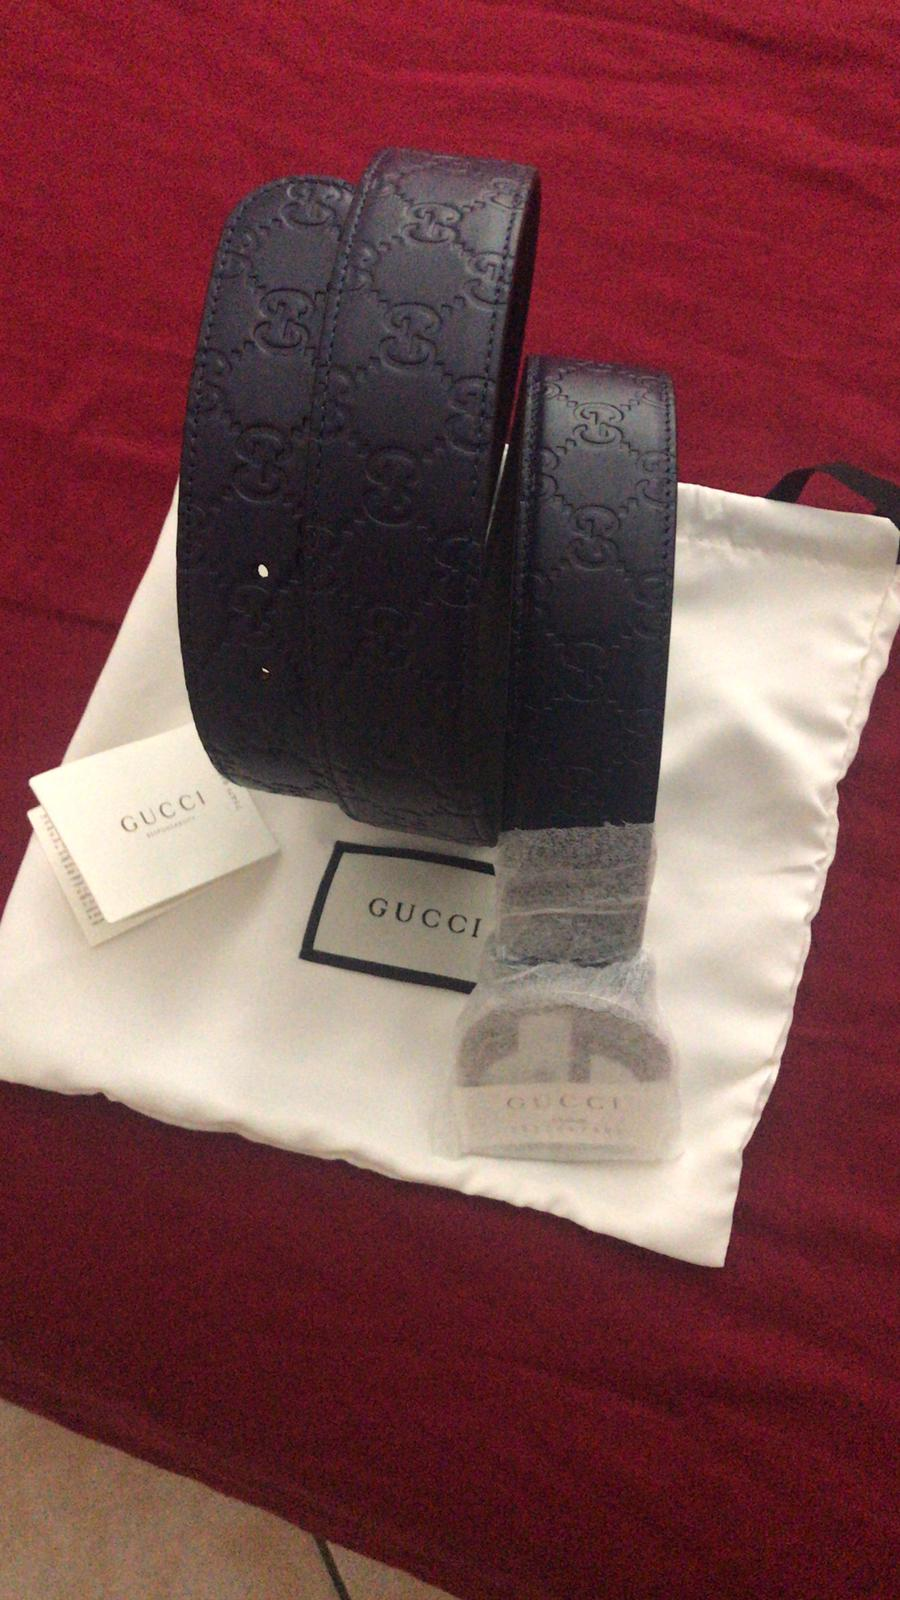 40465 - Gucci belts Europe